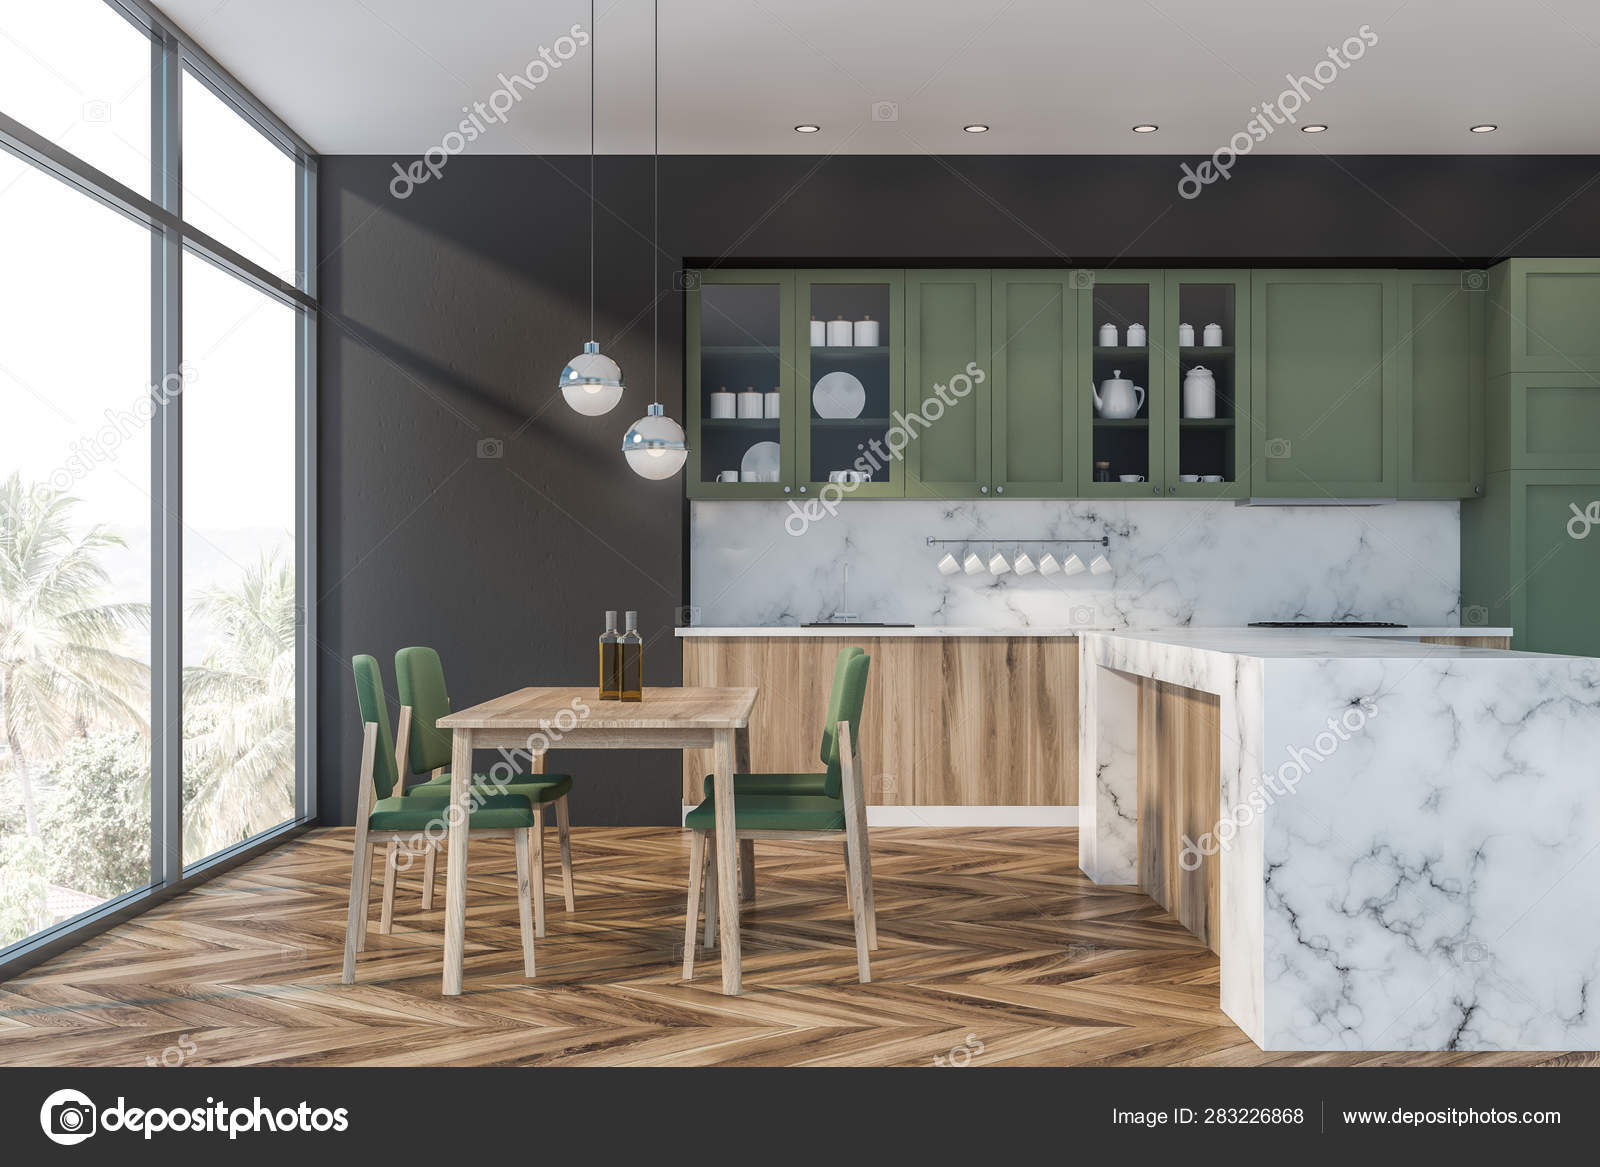 Green And Gray Kitchen Counter And Table Stock Photo C Denisismagilov 283226868